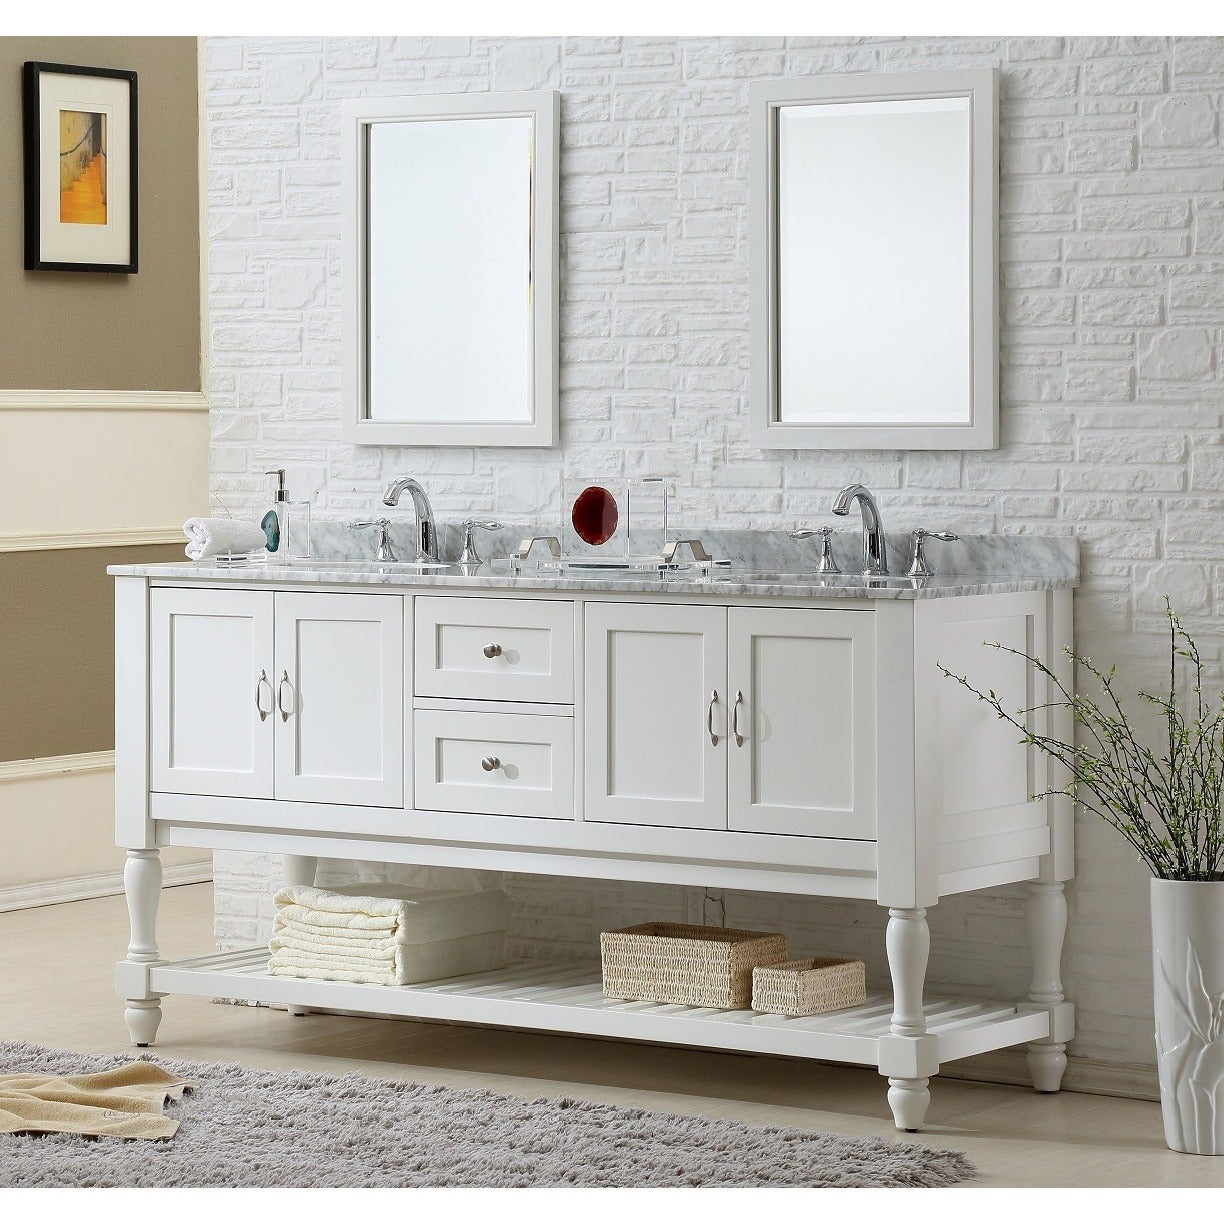 double canada sink categories vanity en modern bath depot bathroom vanities rustic home with more the